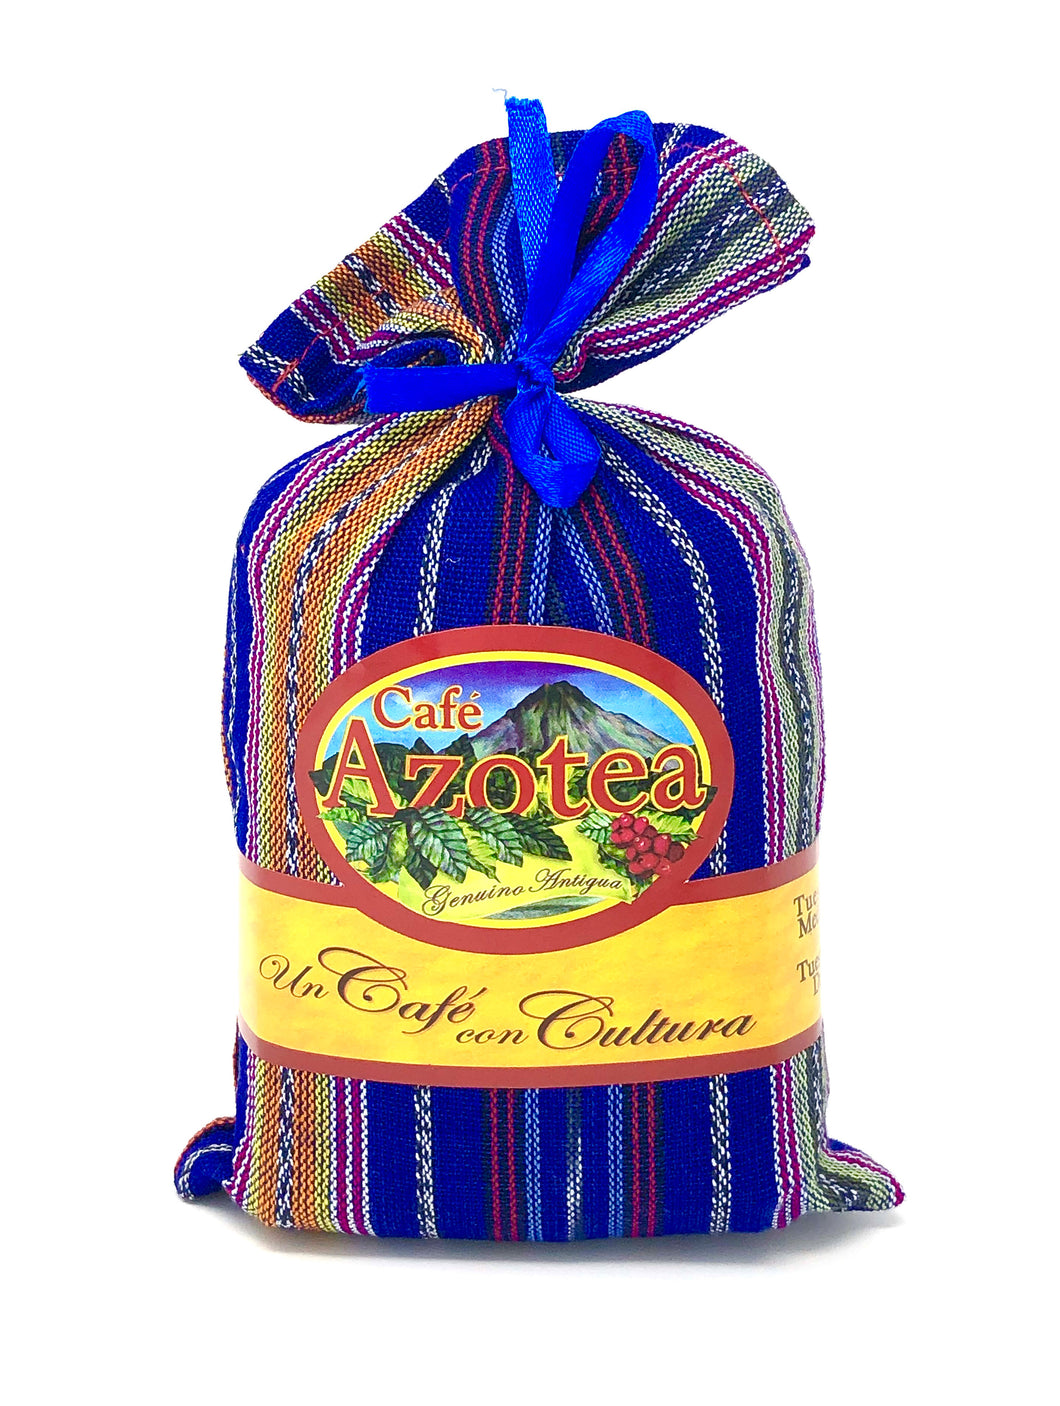 11.5 Oz. Roasted Coffee Gift Guatemalan Typical Bag Finca La Azotea